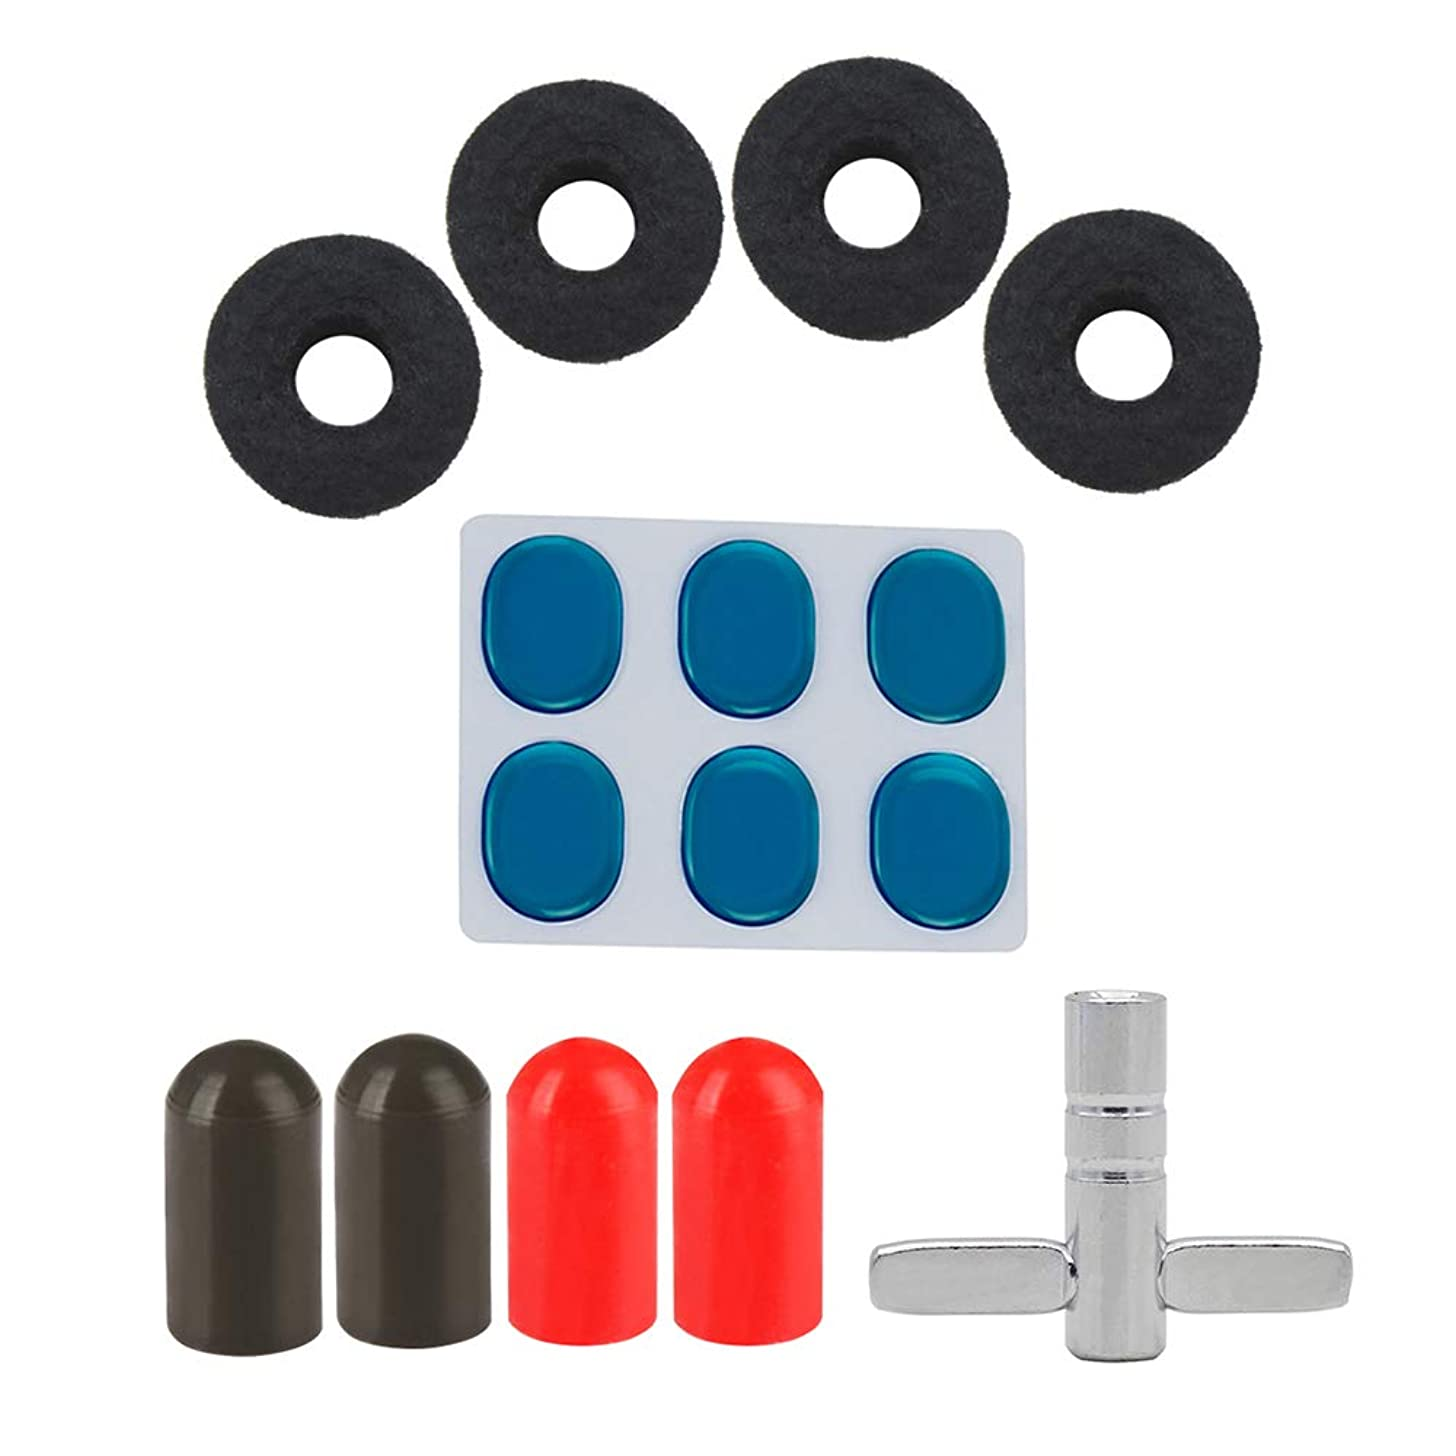 Drum Set Accessories Kit with 4pcs Cymbal Stand Felt Washeres + 4pcs Drumstick Rubber Tips + 6pcs Drum Damper Gel Pads Muffler Mute + 1pc Drum Wrench